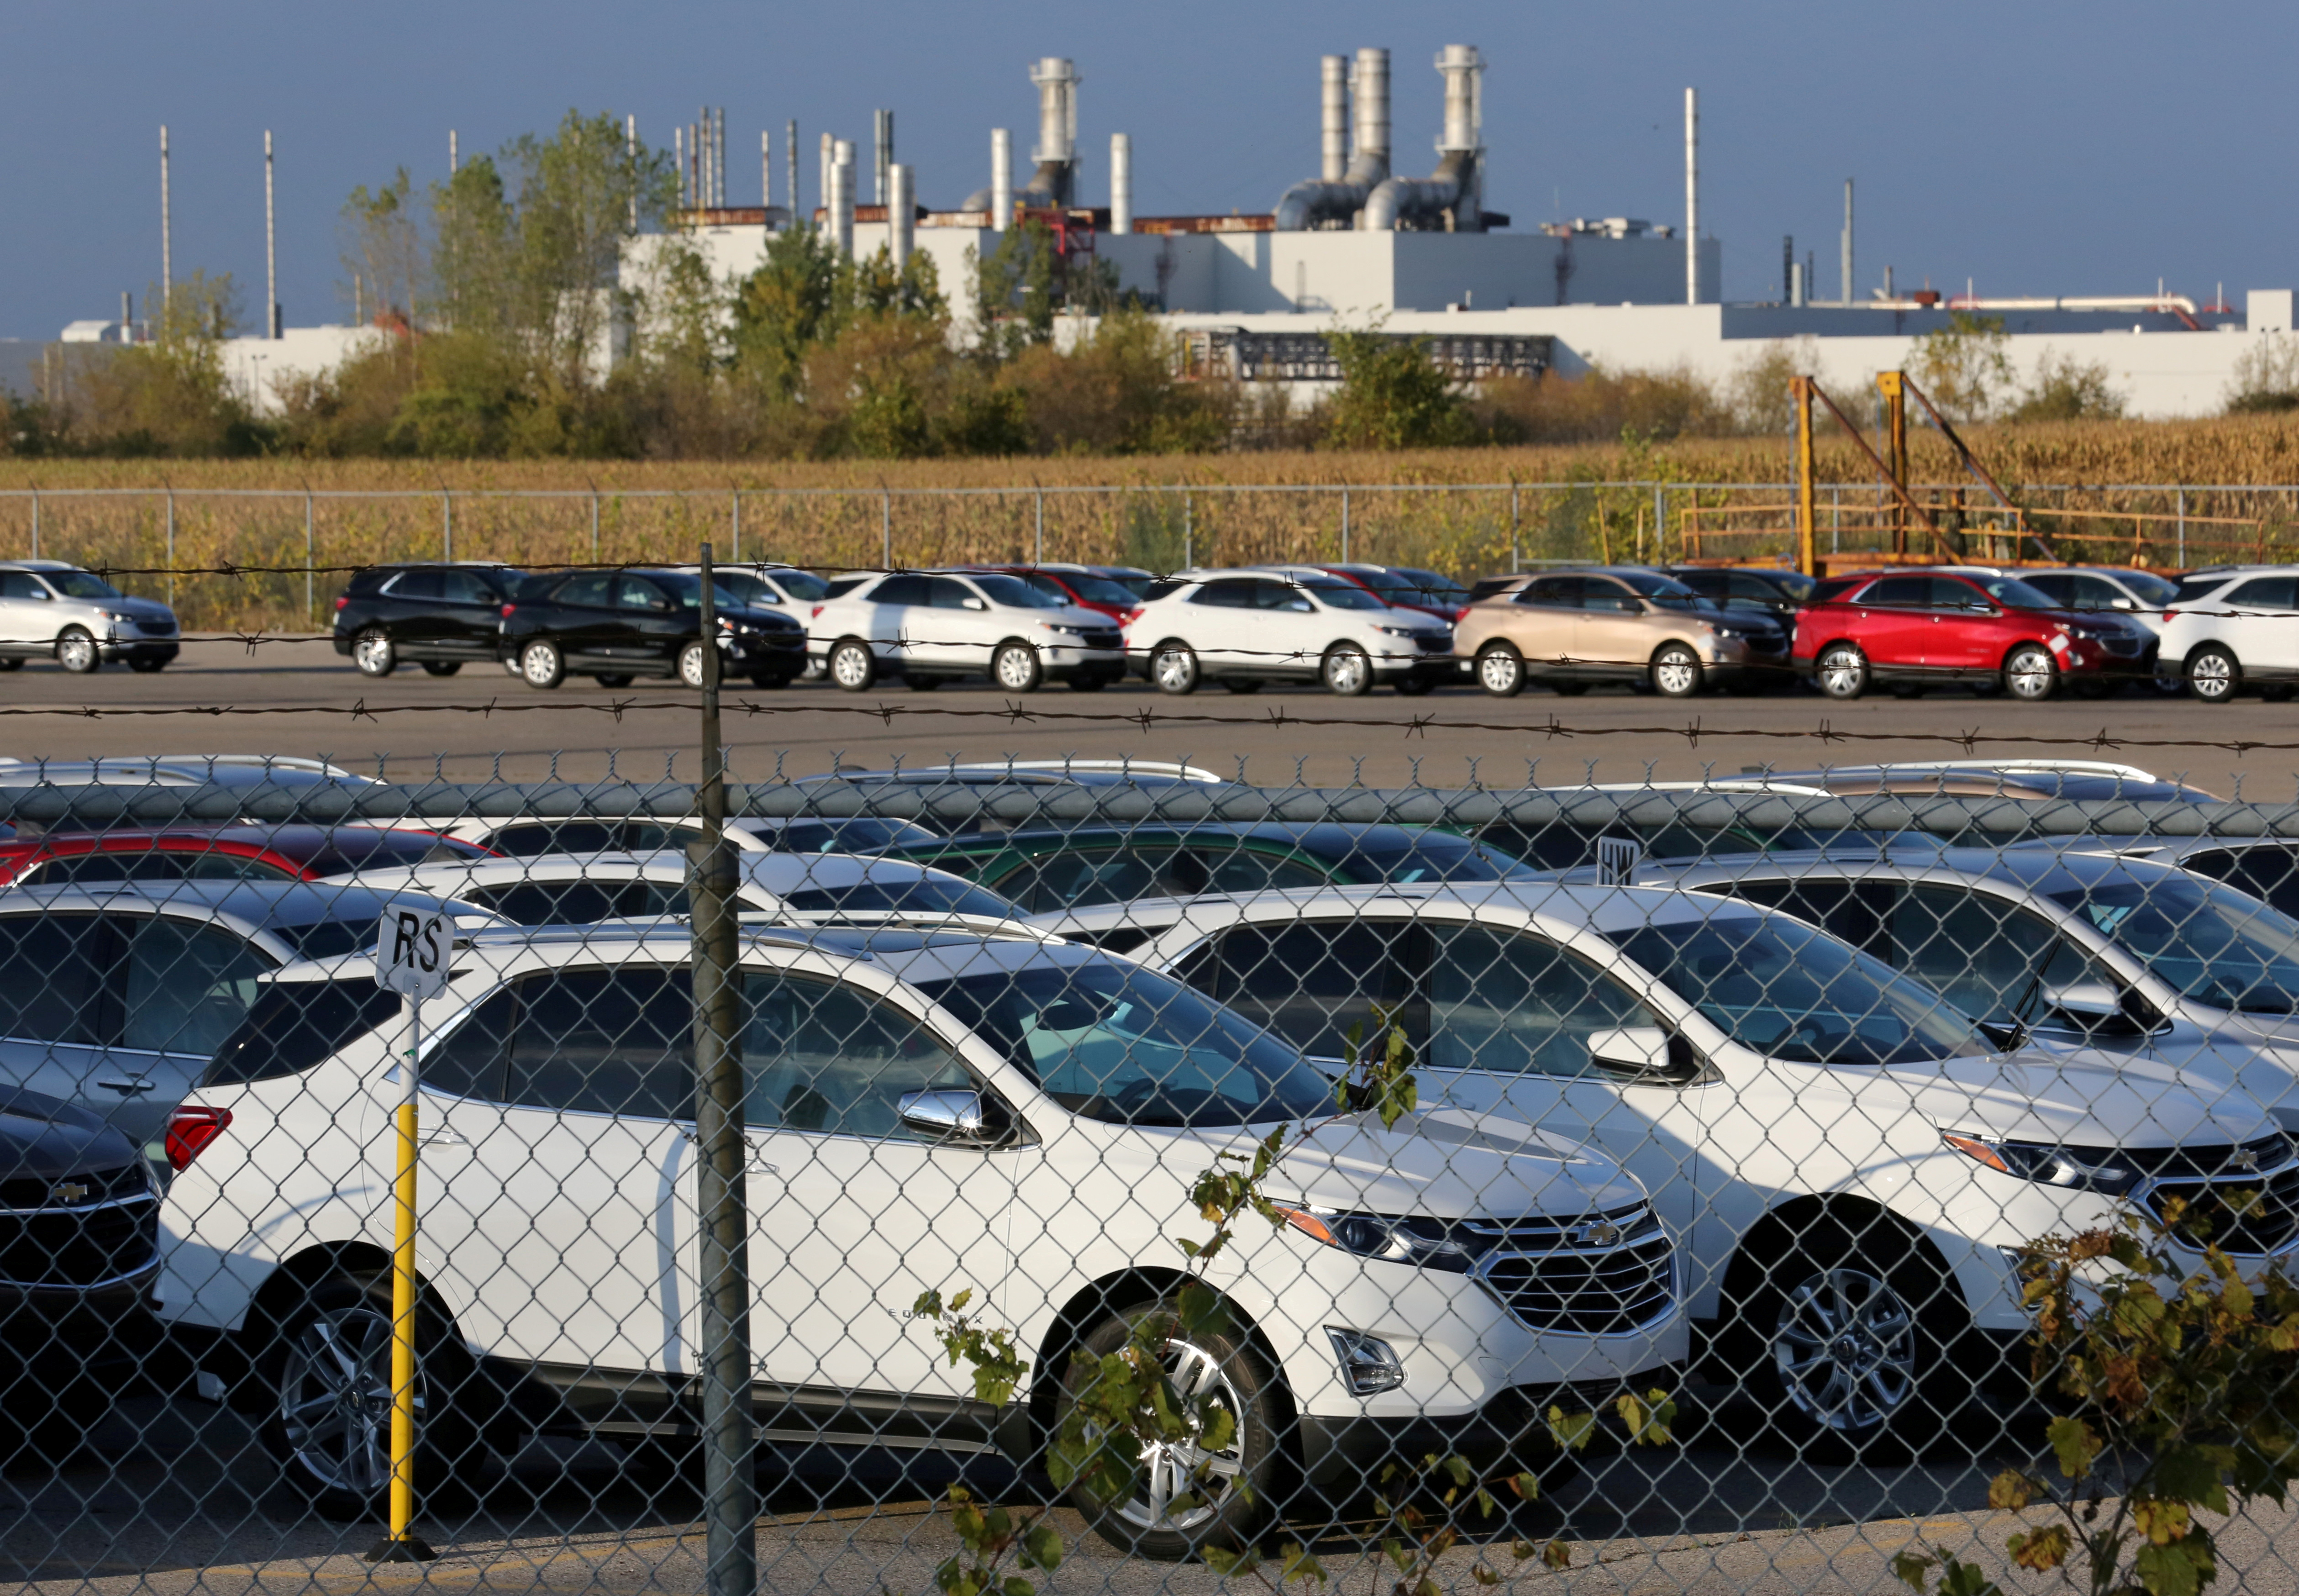 Chevrolet Equinox SUVs are parked awaiting shipment near the General Motors Co (GM) CAMI assembly plant in Ingersoll, Ontario, Canada October 13, 2017. REUTERS/Chris Helgren